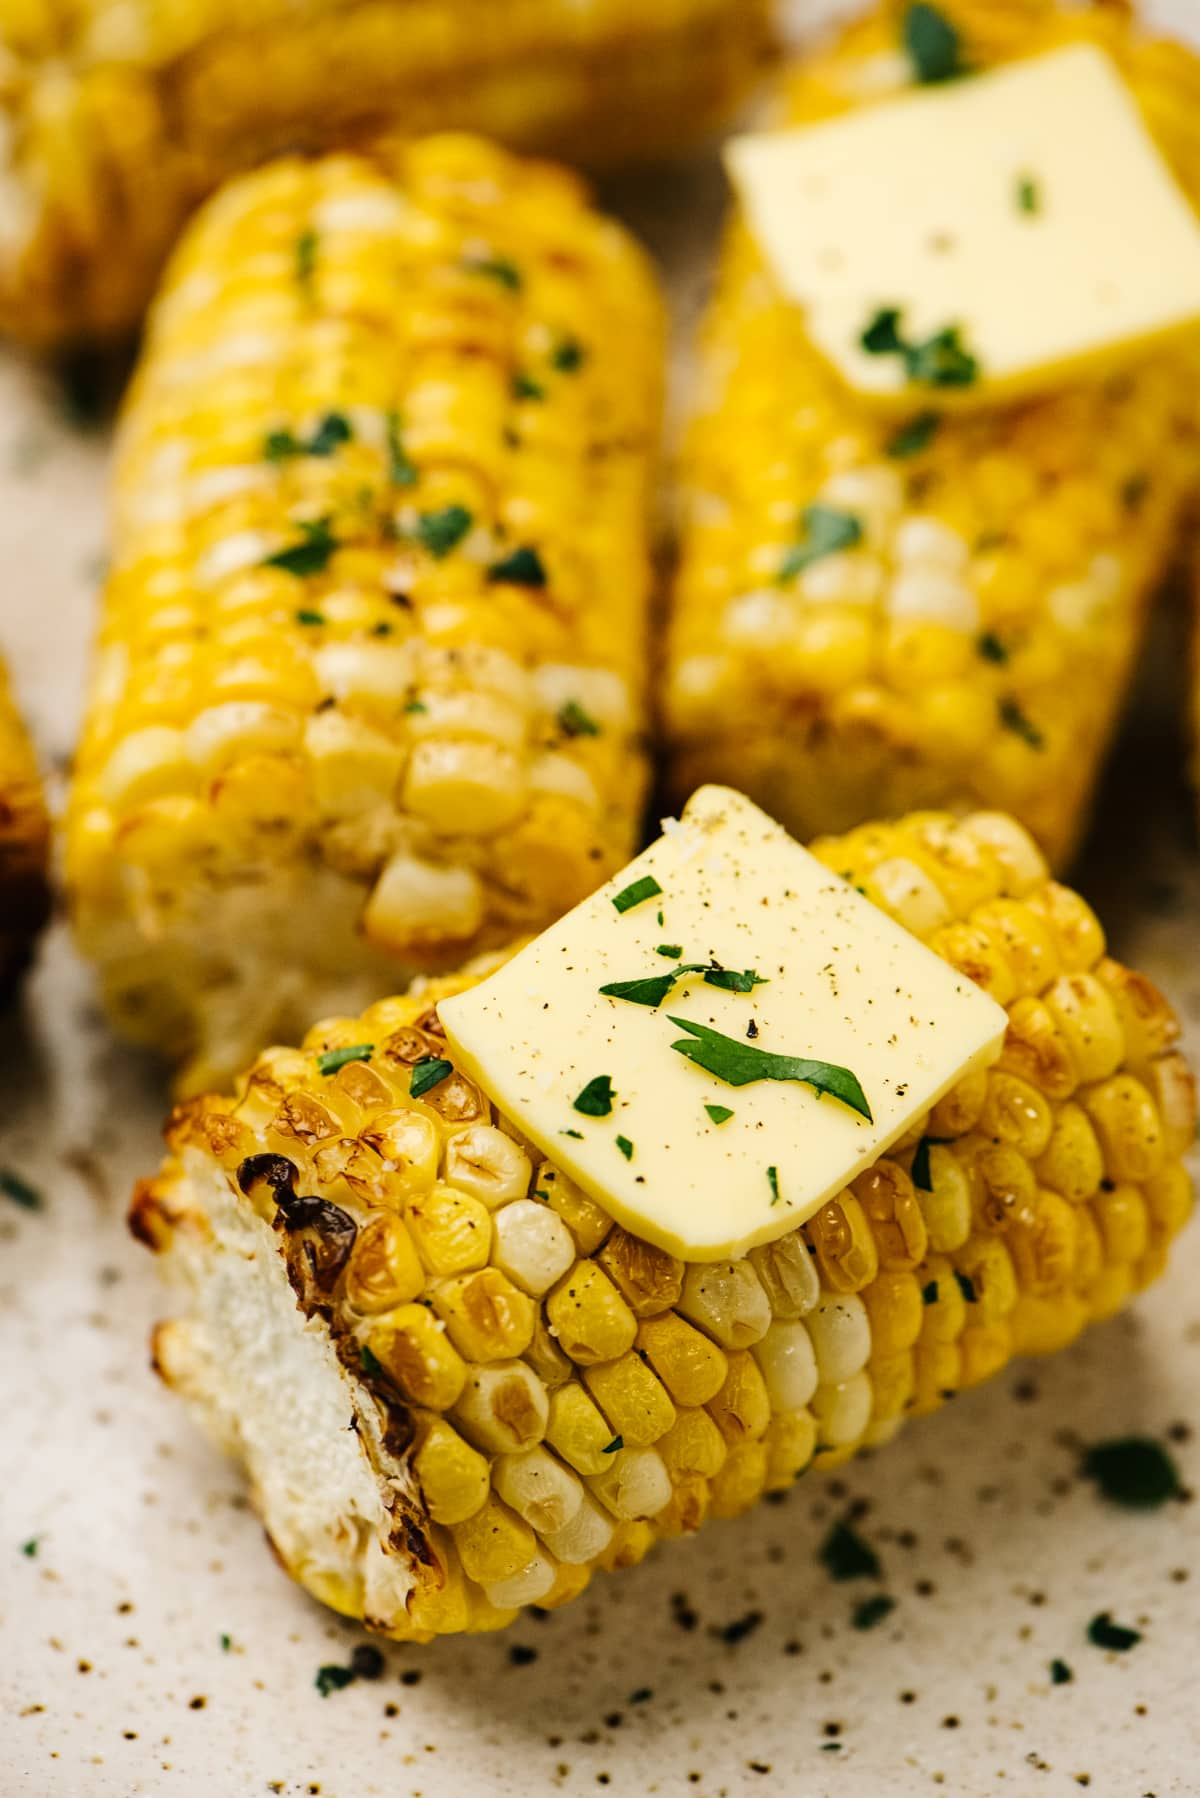 Side view, air fryer corn on the cob on a speckled tan plate, topped with butter and chopped basil.